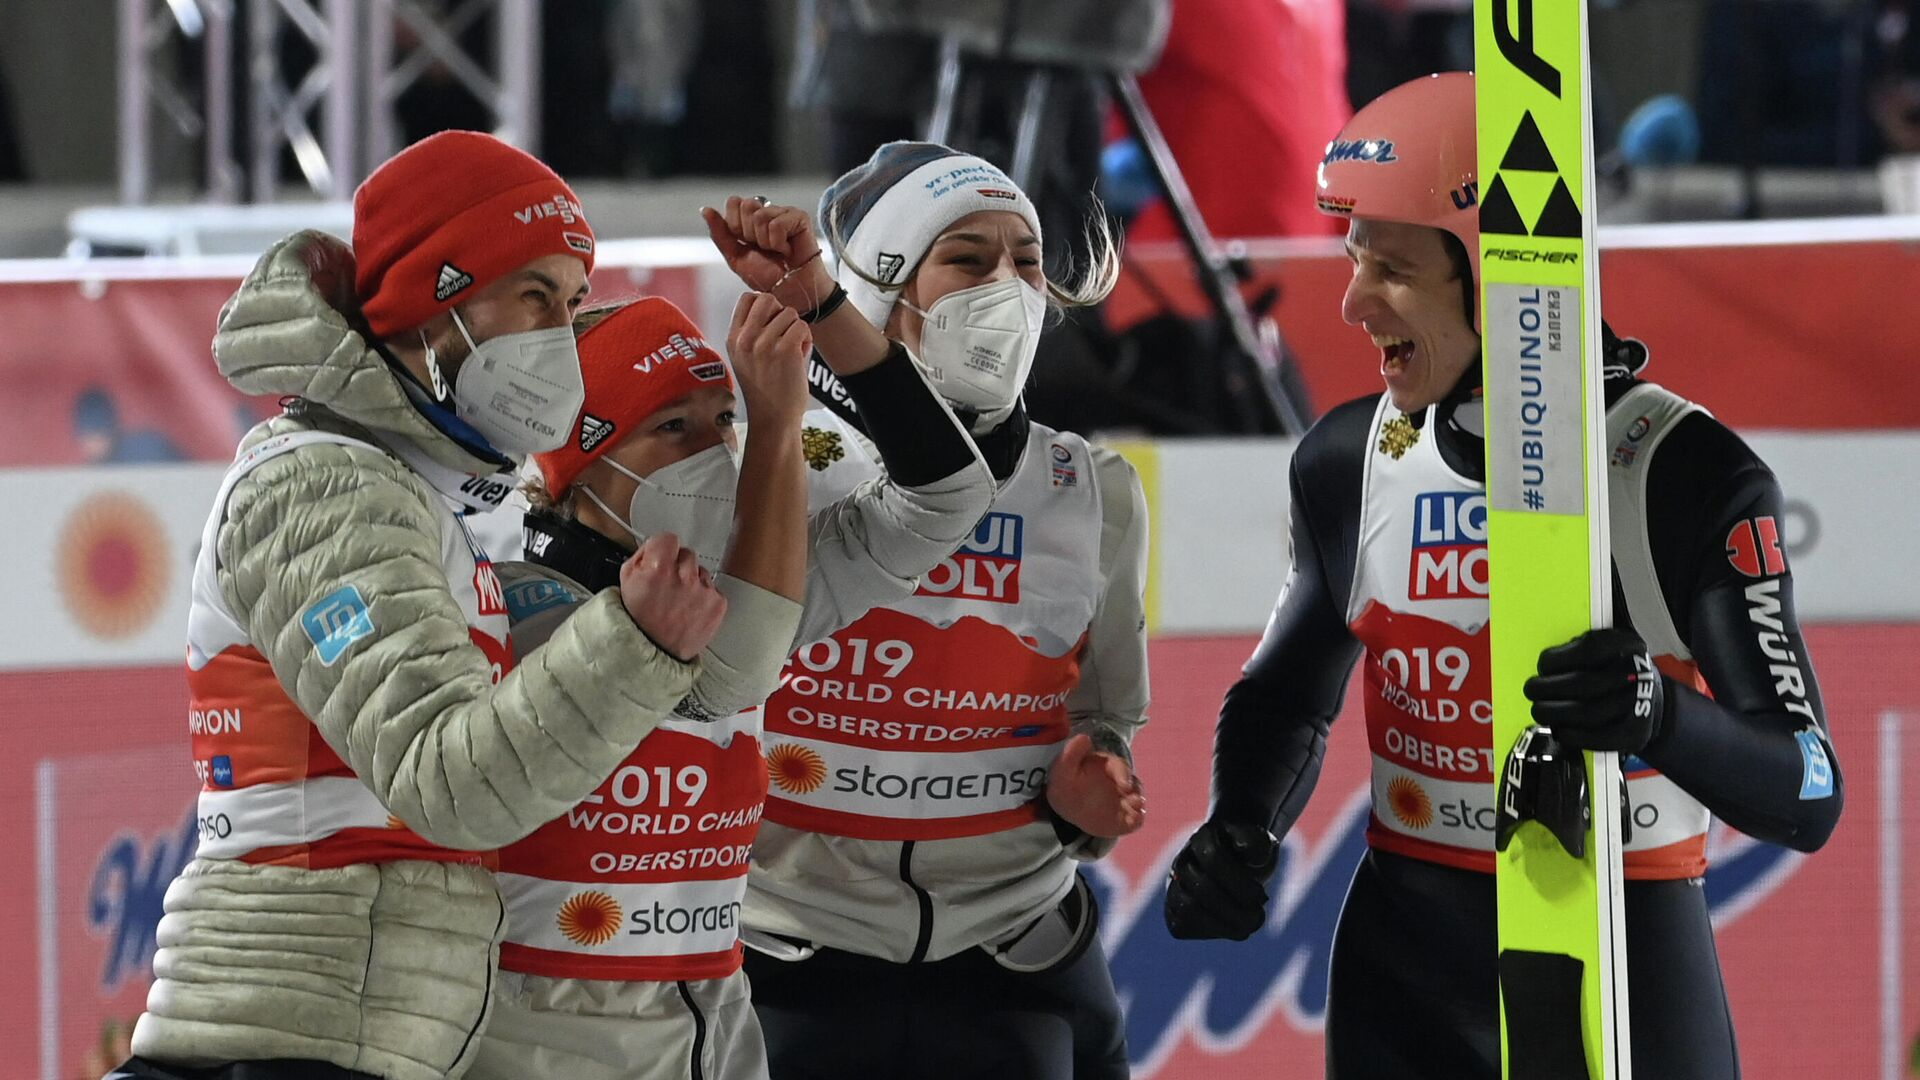 Germany's Karl Geiger (R) celebrates with (L-R) Germany's Markus Eisenbichler, Germany's Katharina Althaus and Germany's Anna Rupprecht after his jump in the Mixed Team HS106 hill jumping event at the FIS Nordic Ski World Championships in Oberstdorf, southern Germany, on February 28, 2021. (Photo by CHRISTOF STACHE / AFP) - РИА Новости, 1920, 28.02.2021